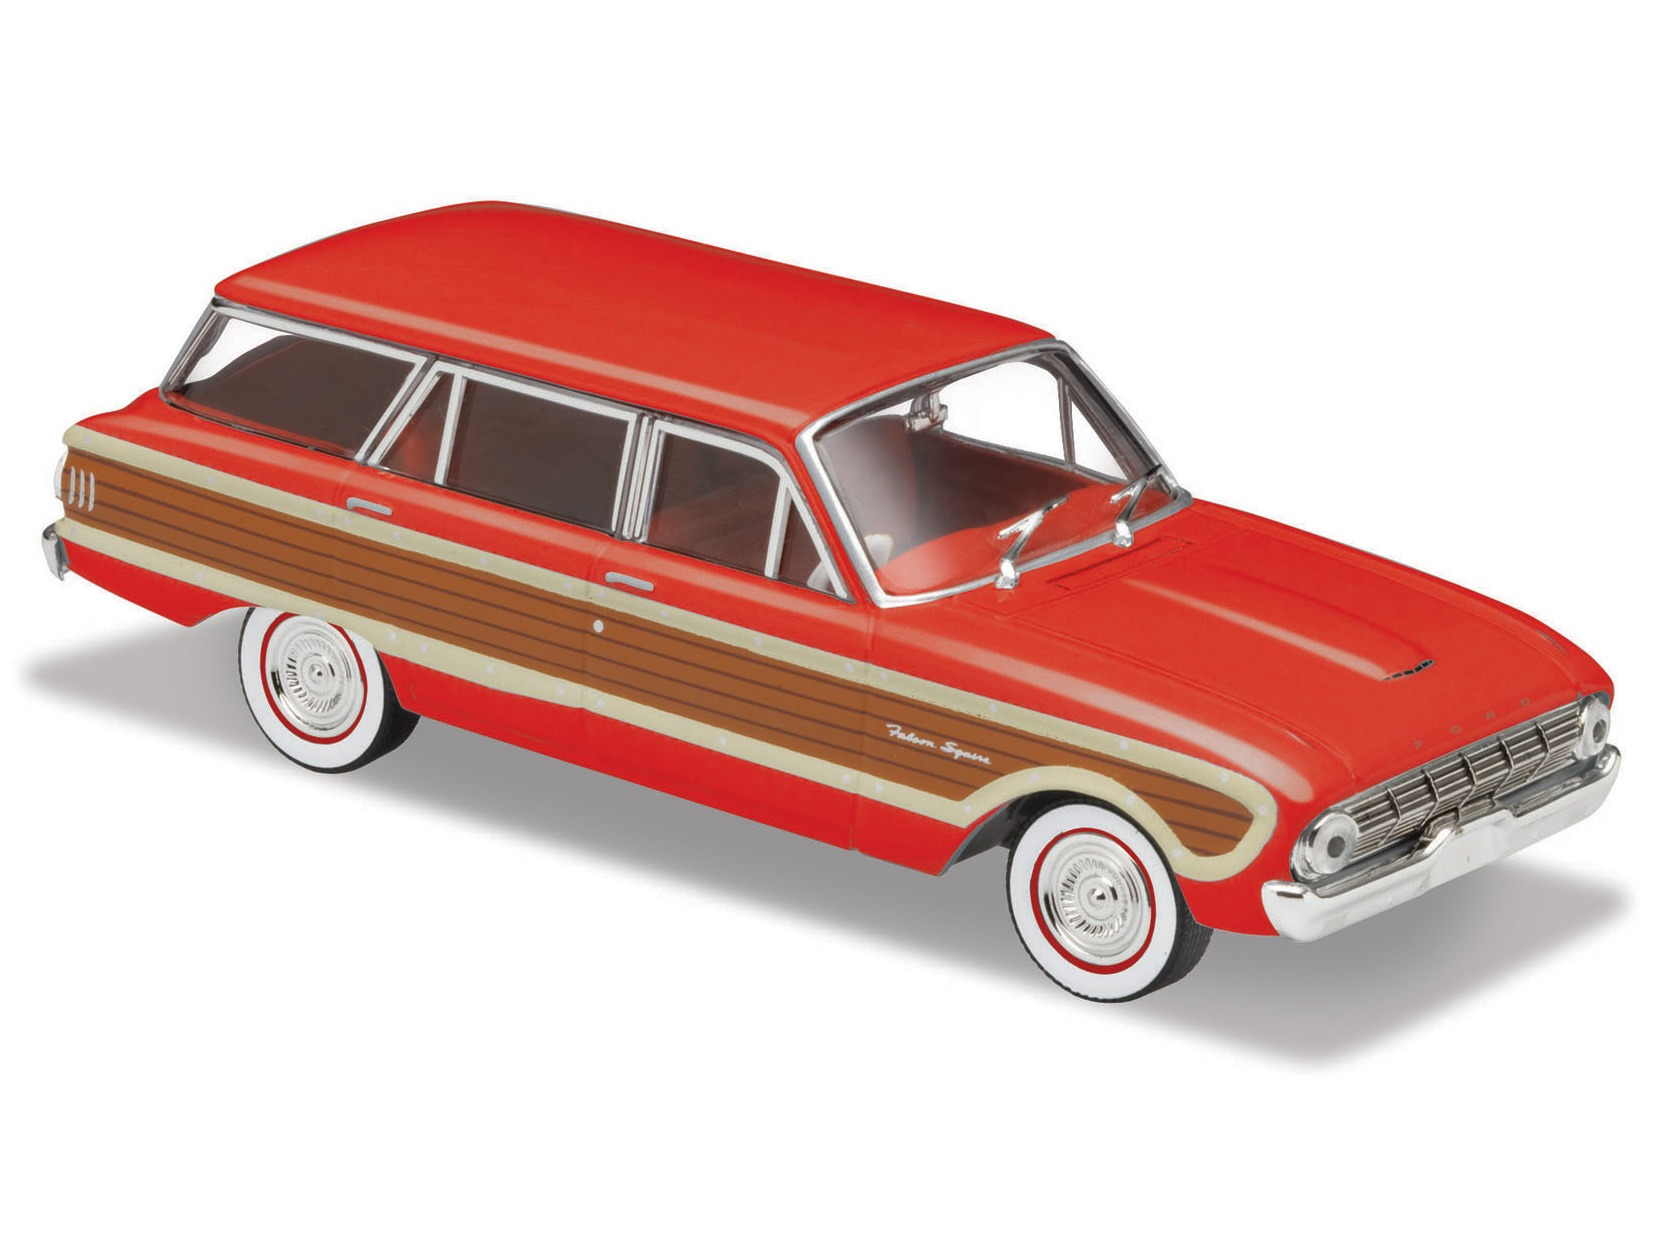 1962 Ford XL Falcon Squire Wagon – Red Woody